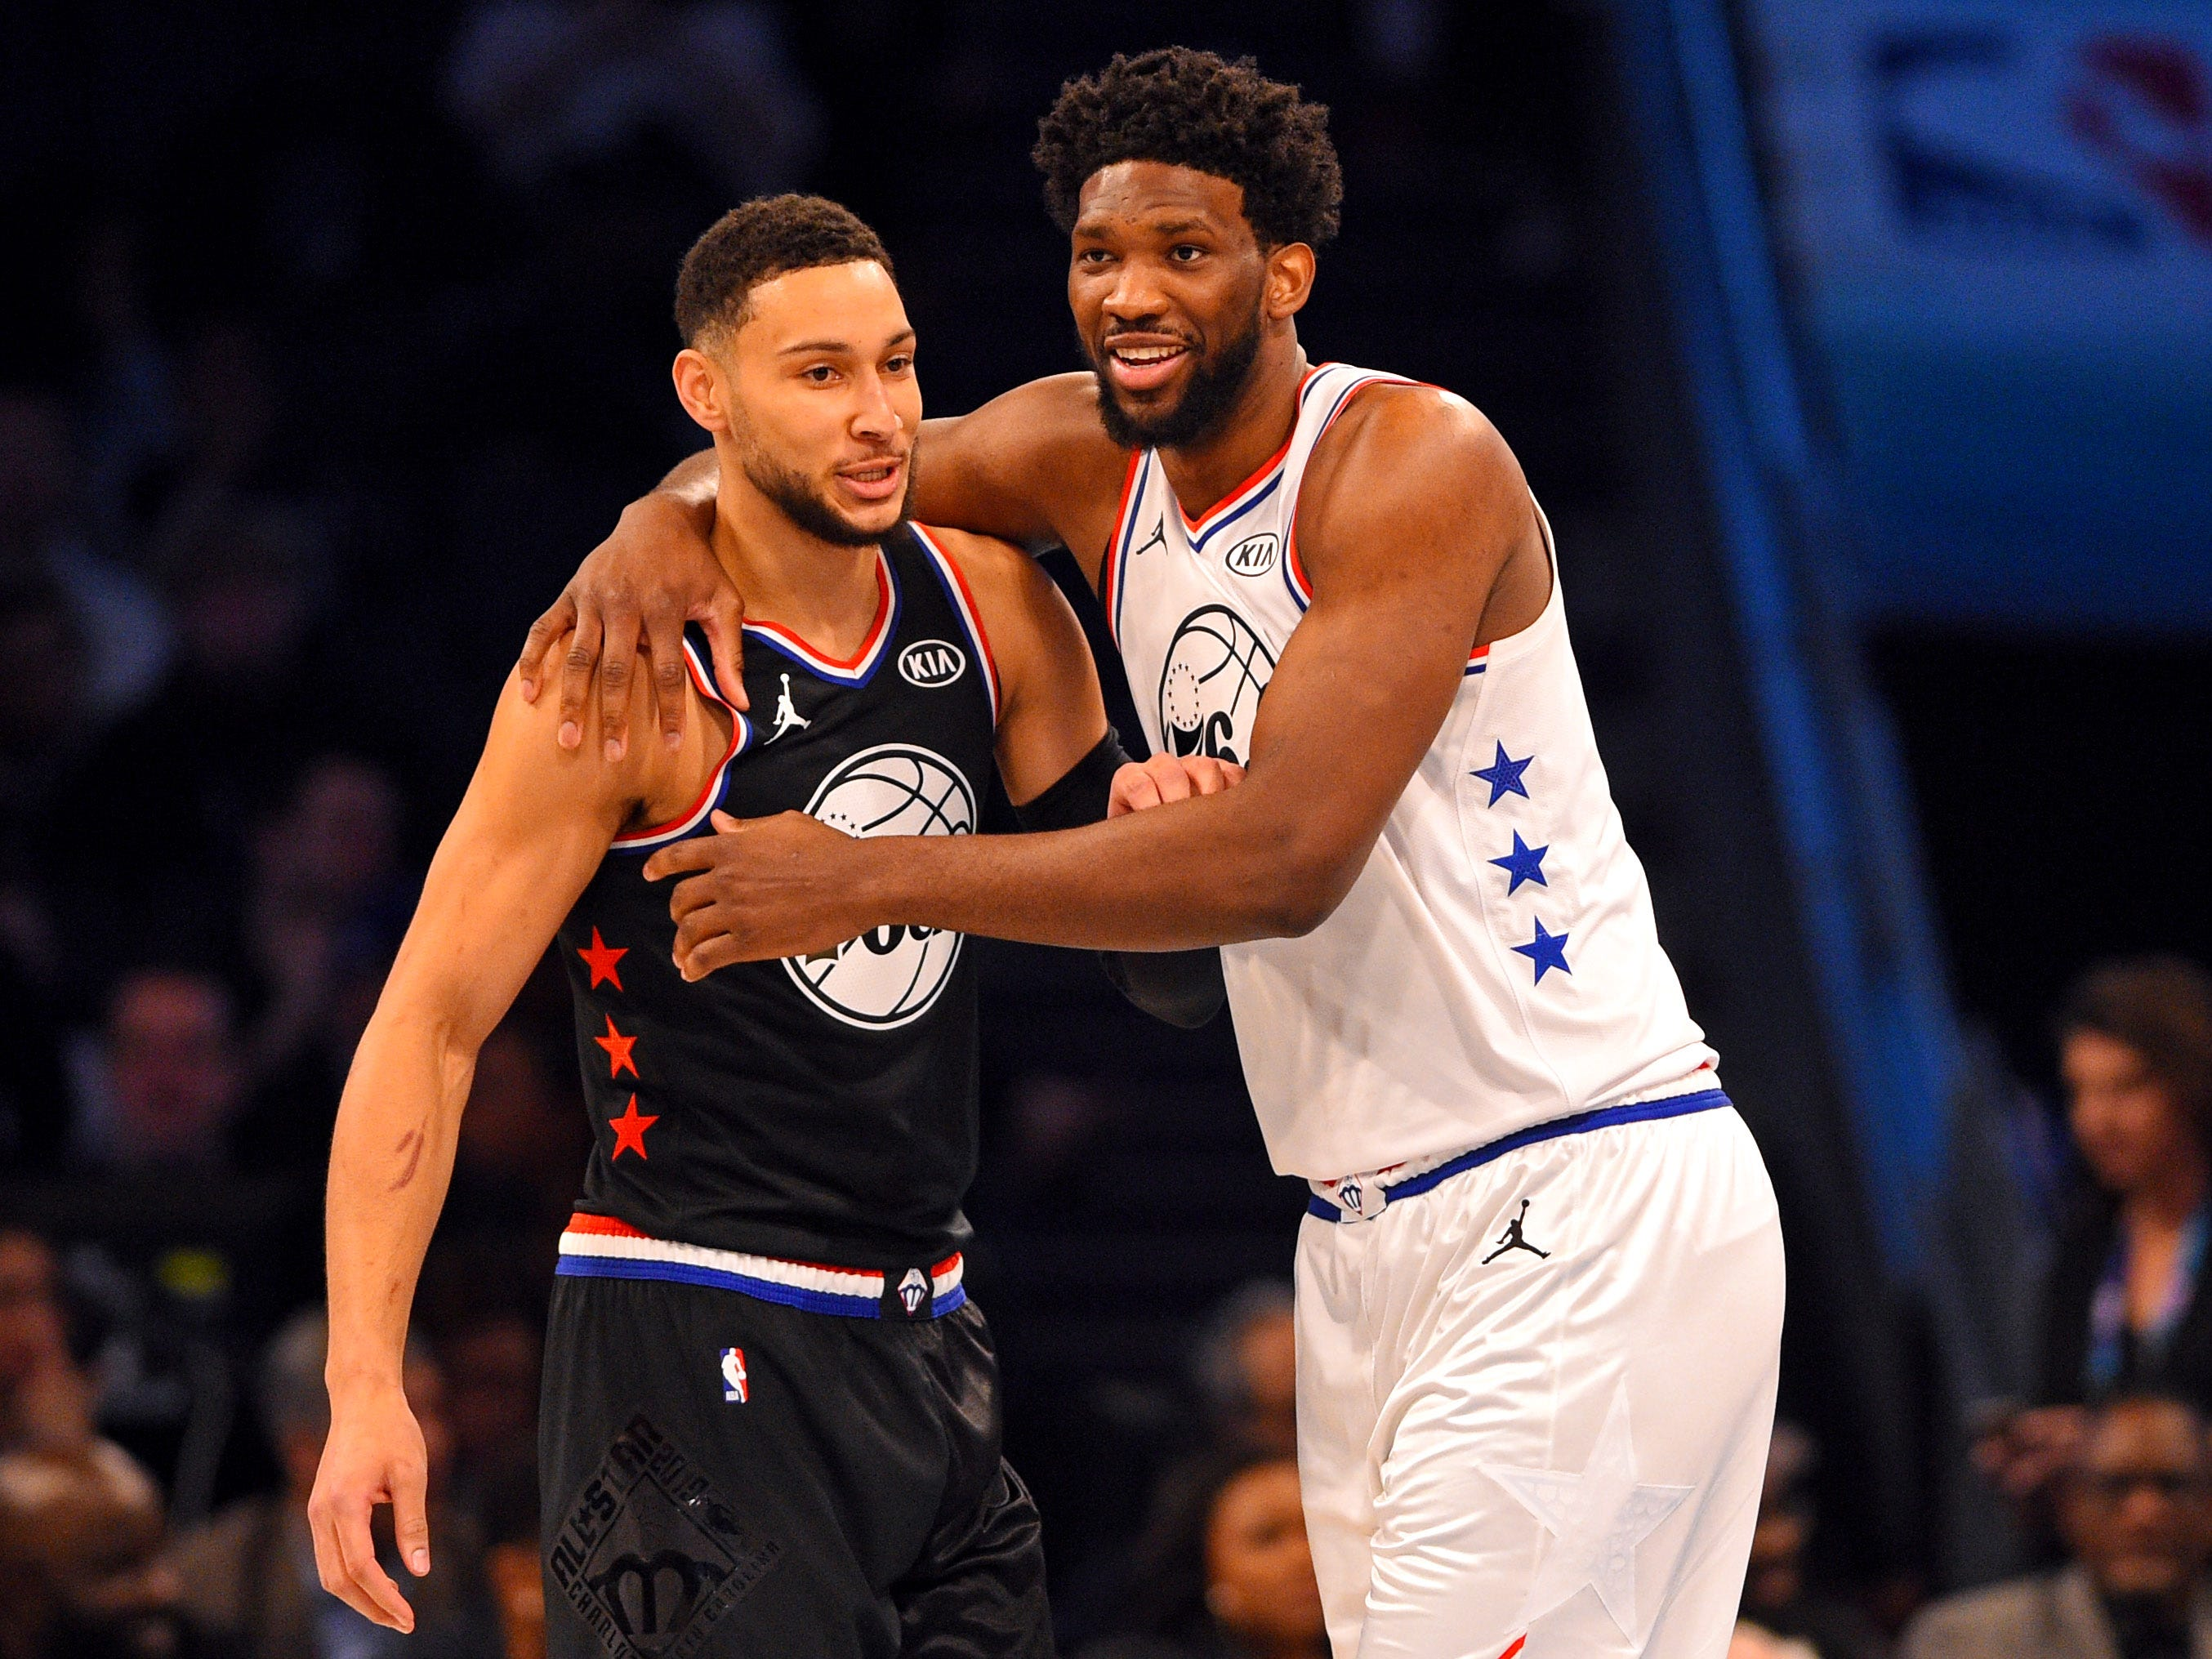 Joel Embiid hugs 76ers teammate Ben Simmons during the All-Star Game.